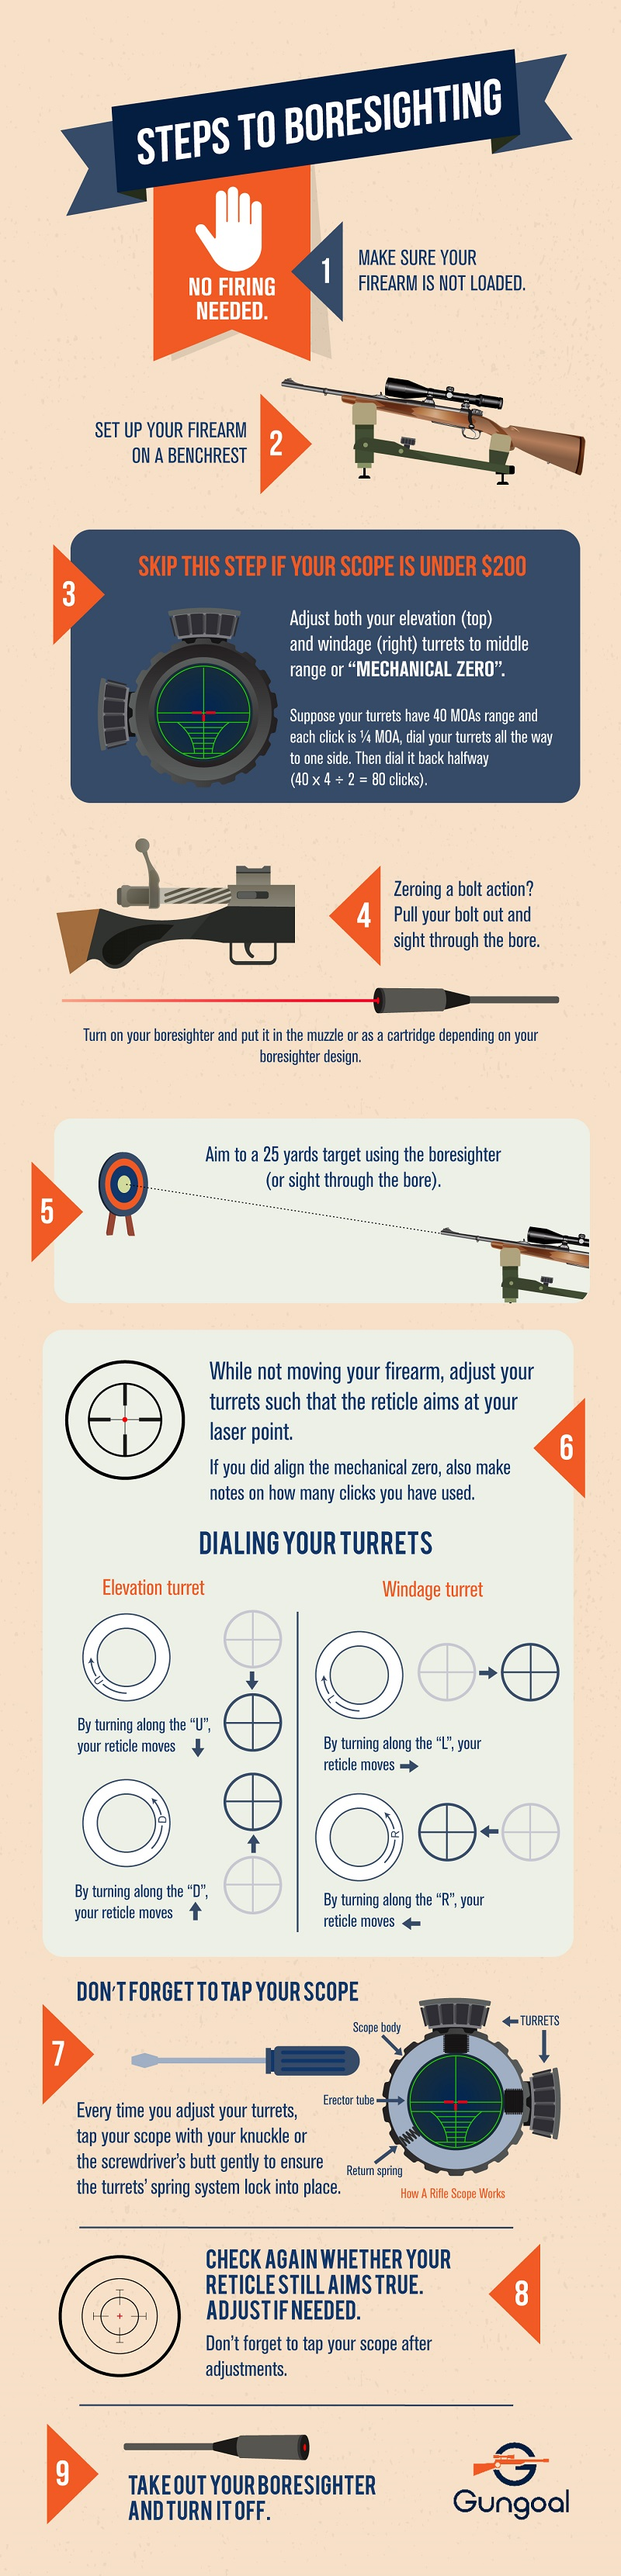 How to Boresight Infographic